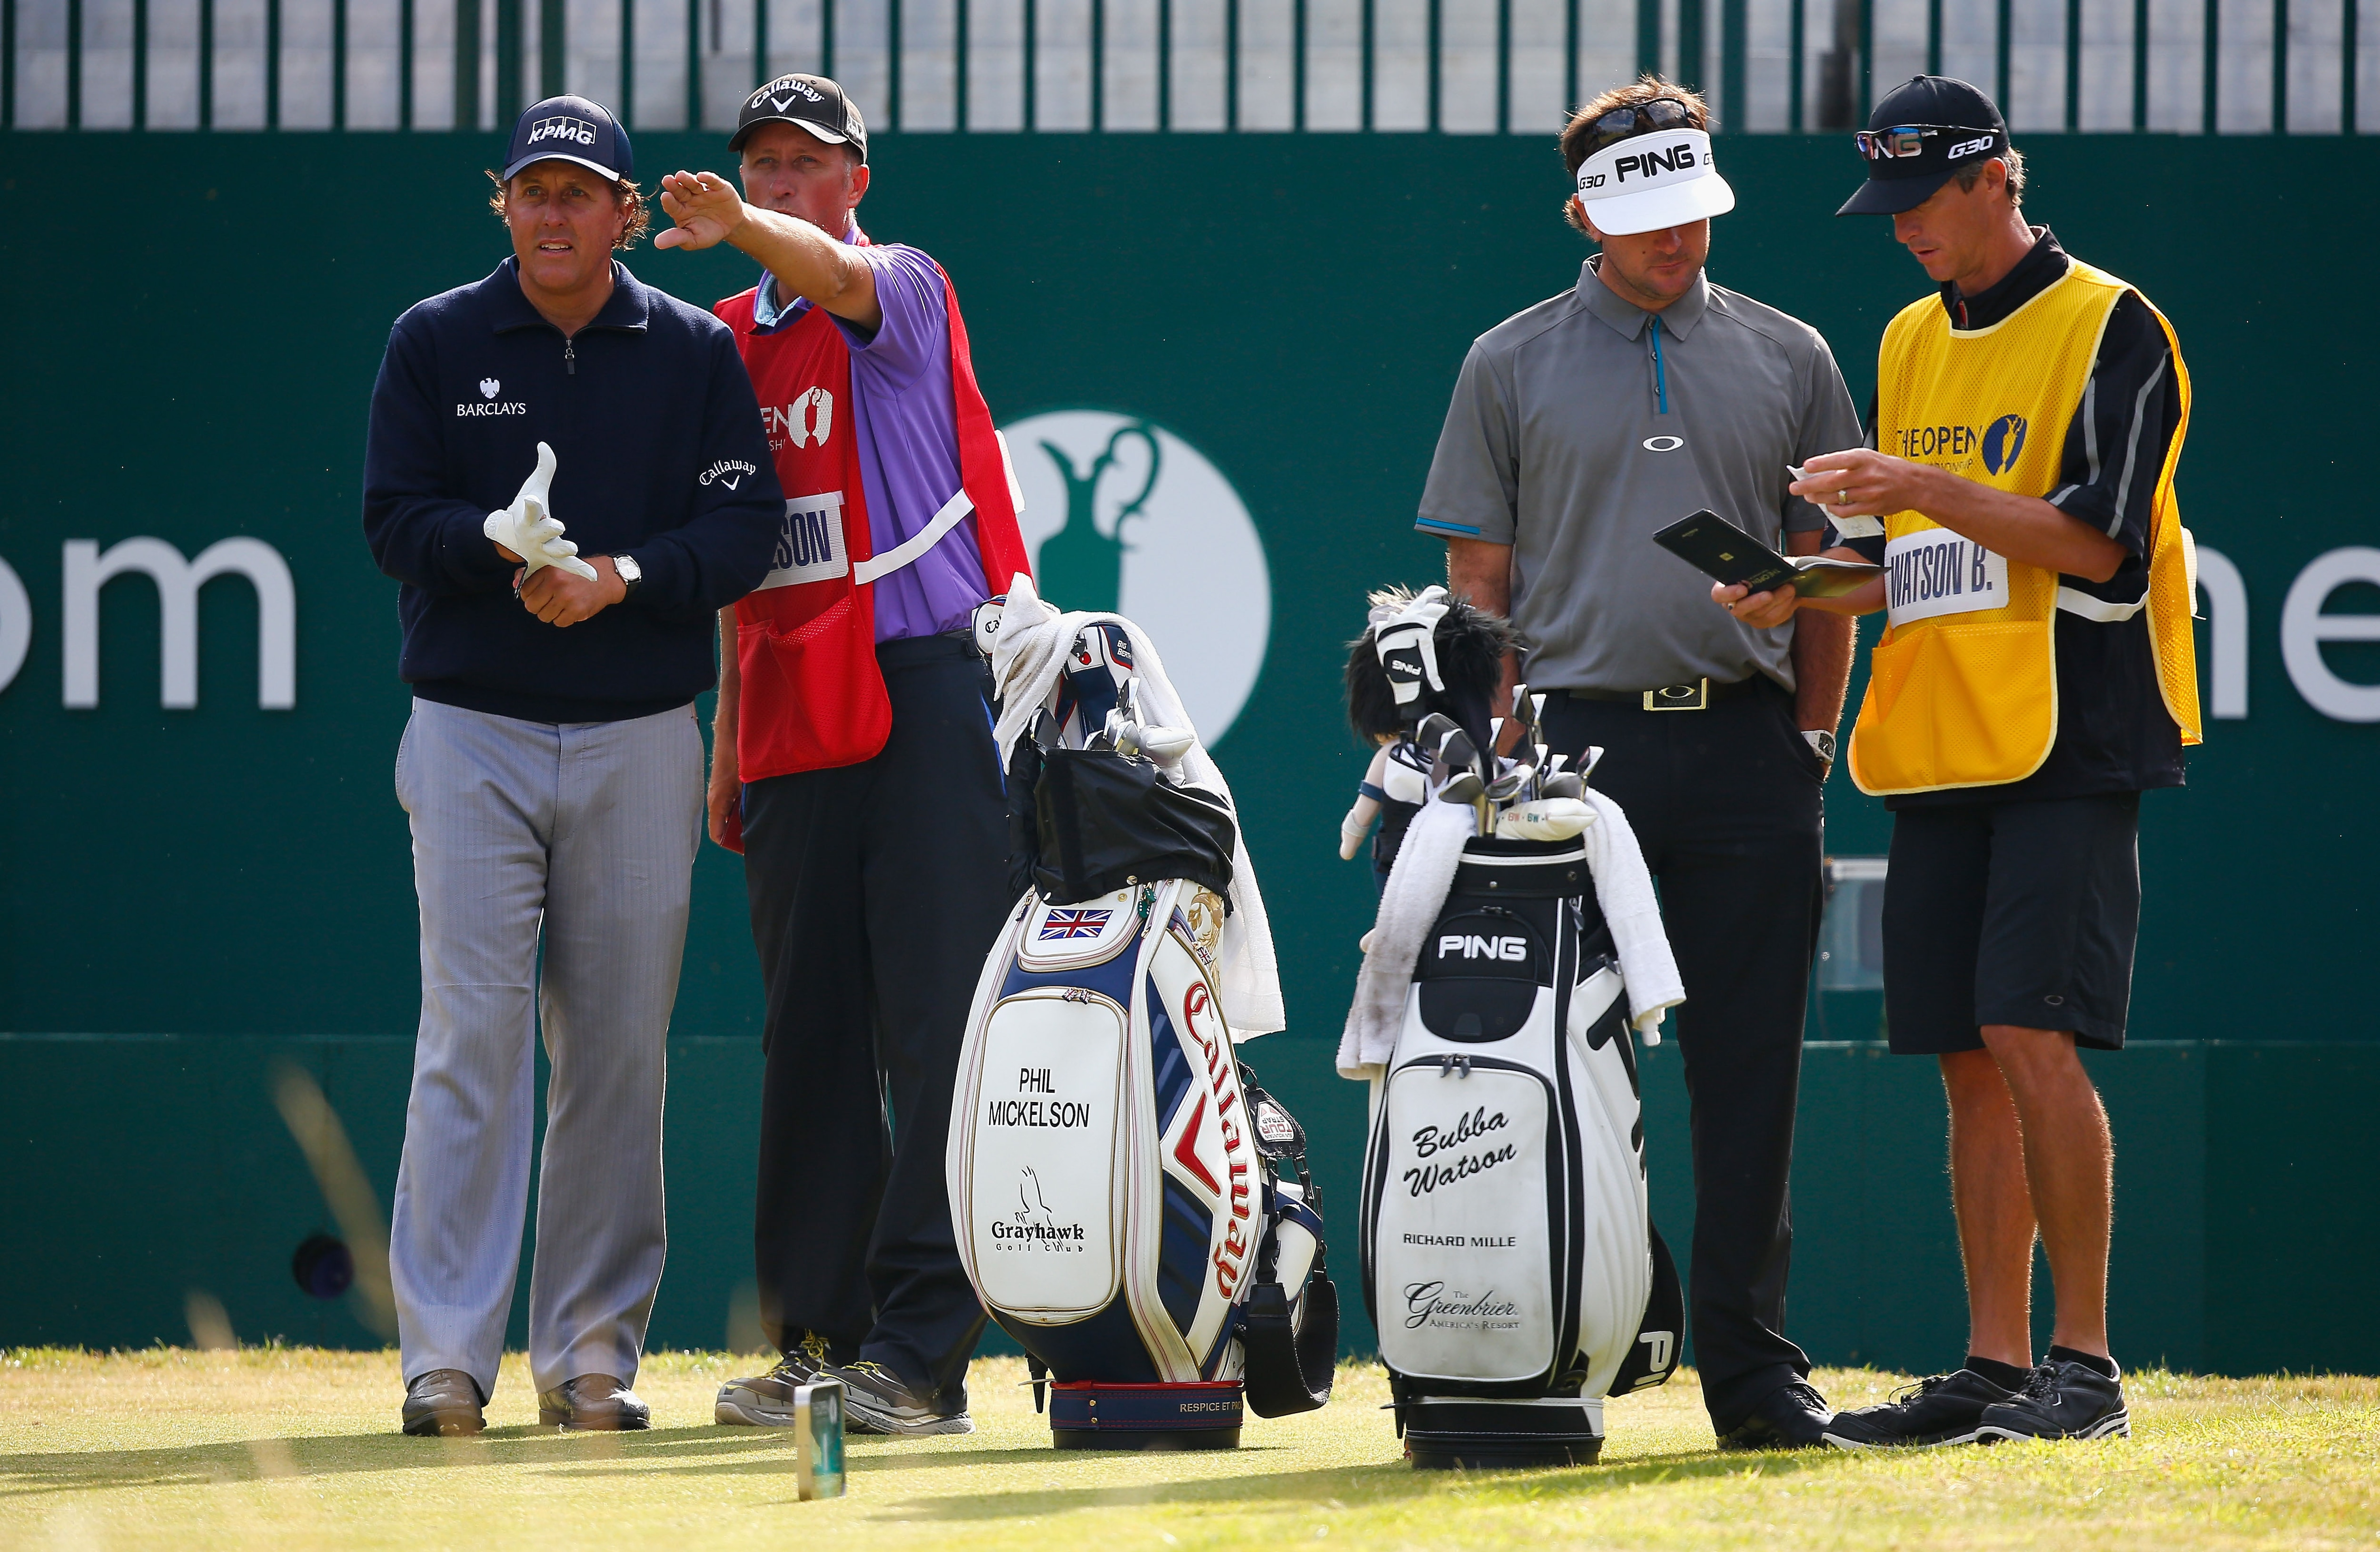 Phil Mickelson and Bubba Watson